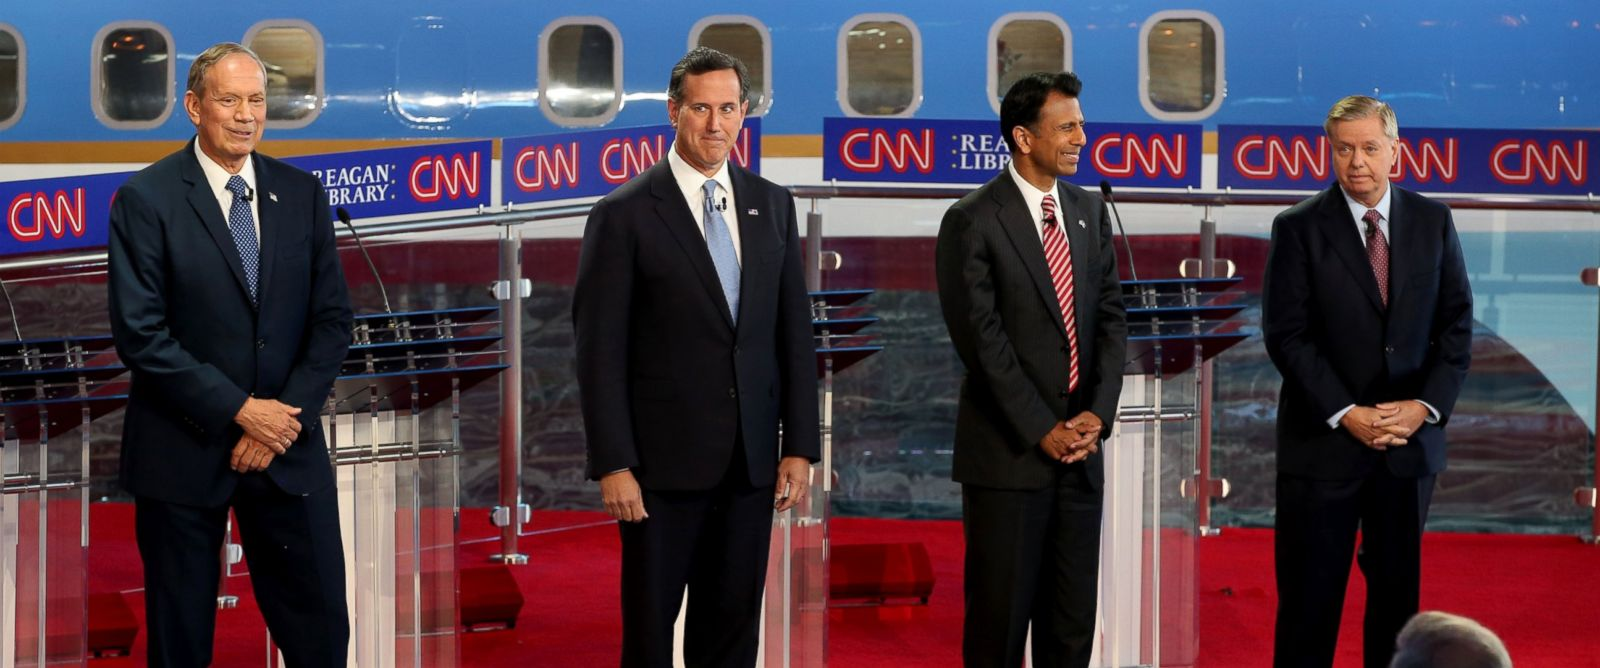 PHOTO: Republican presidential candidates, George Pataki, Rick Santorum, Louisiana Gov. Bobby Jindal and Senator Lindsey Graham stand onstage during the presidential debates at the Reagan Library on Sept.16, 2015 in Simi Valley, Calif.